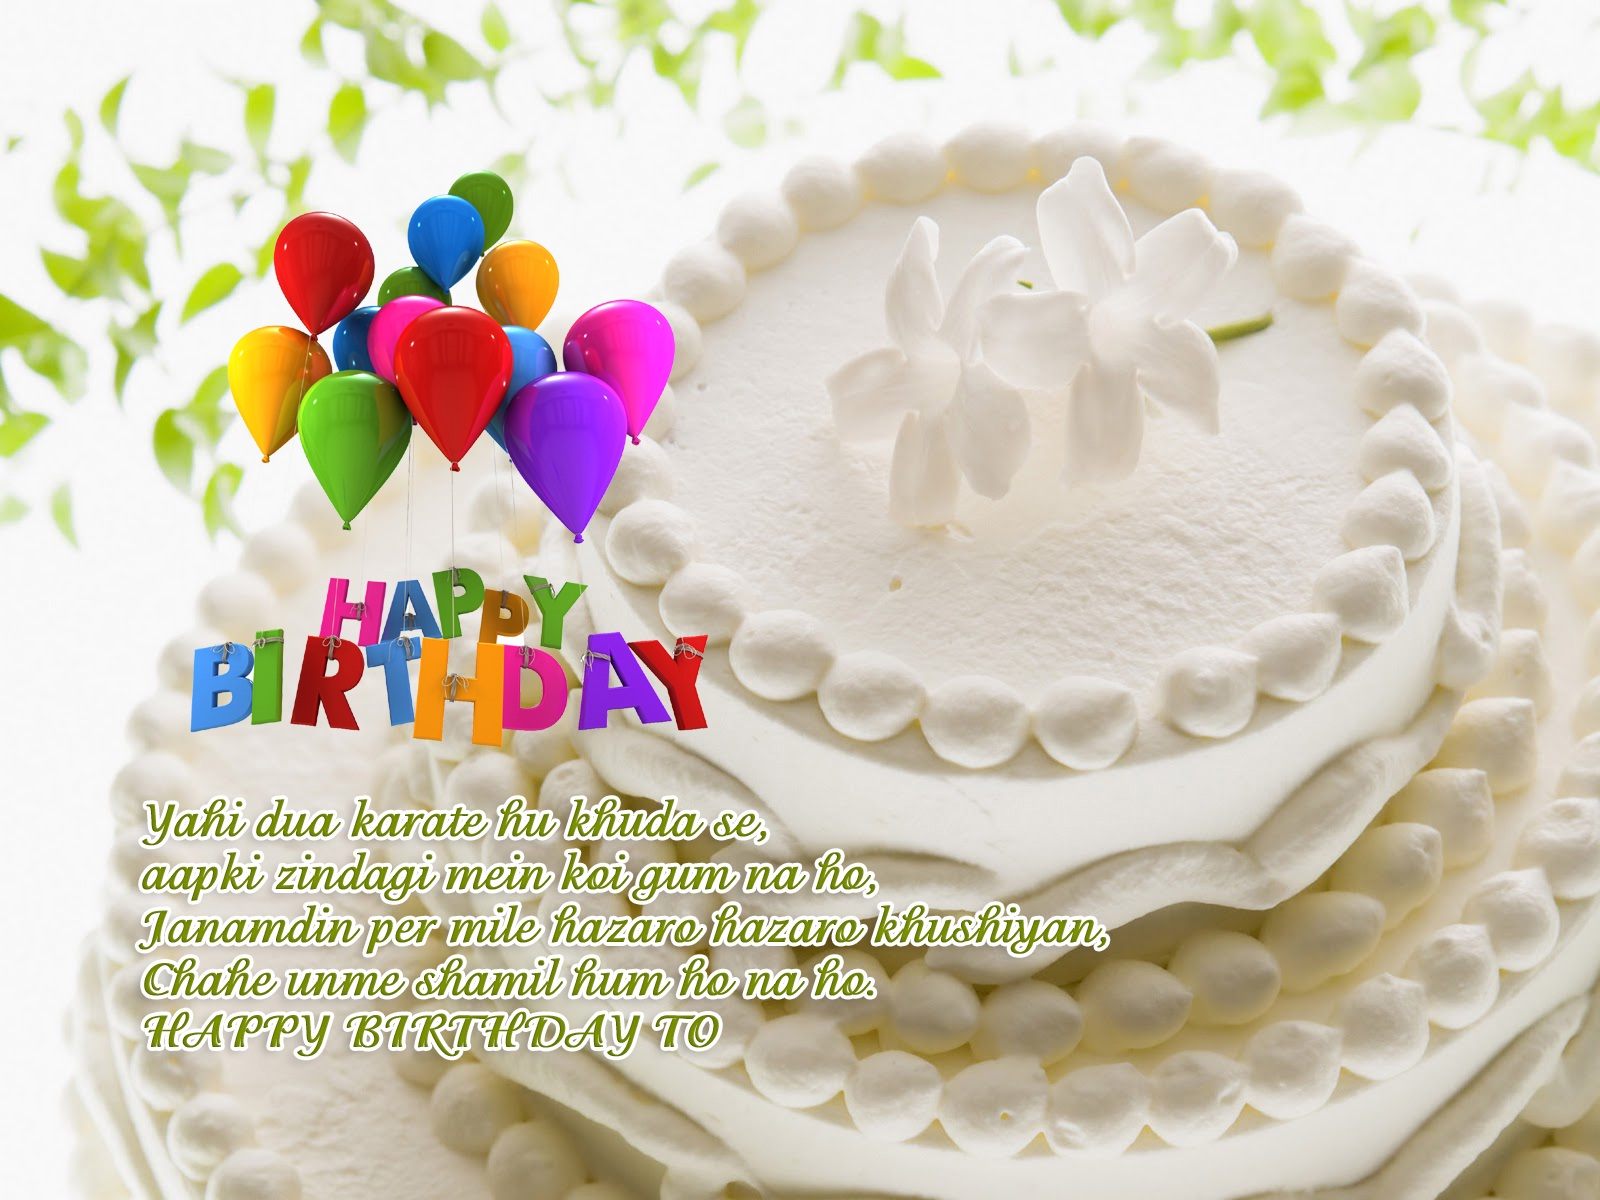 birthday cake with message picture ; Happy-birthday-cake-with-best-wishes-message